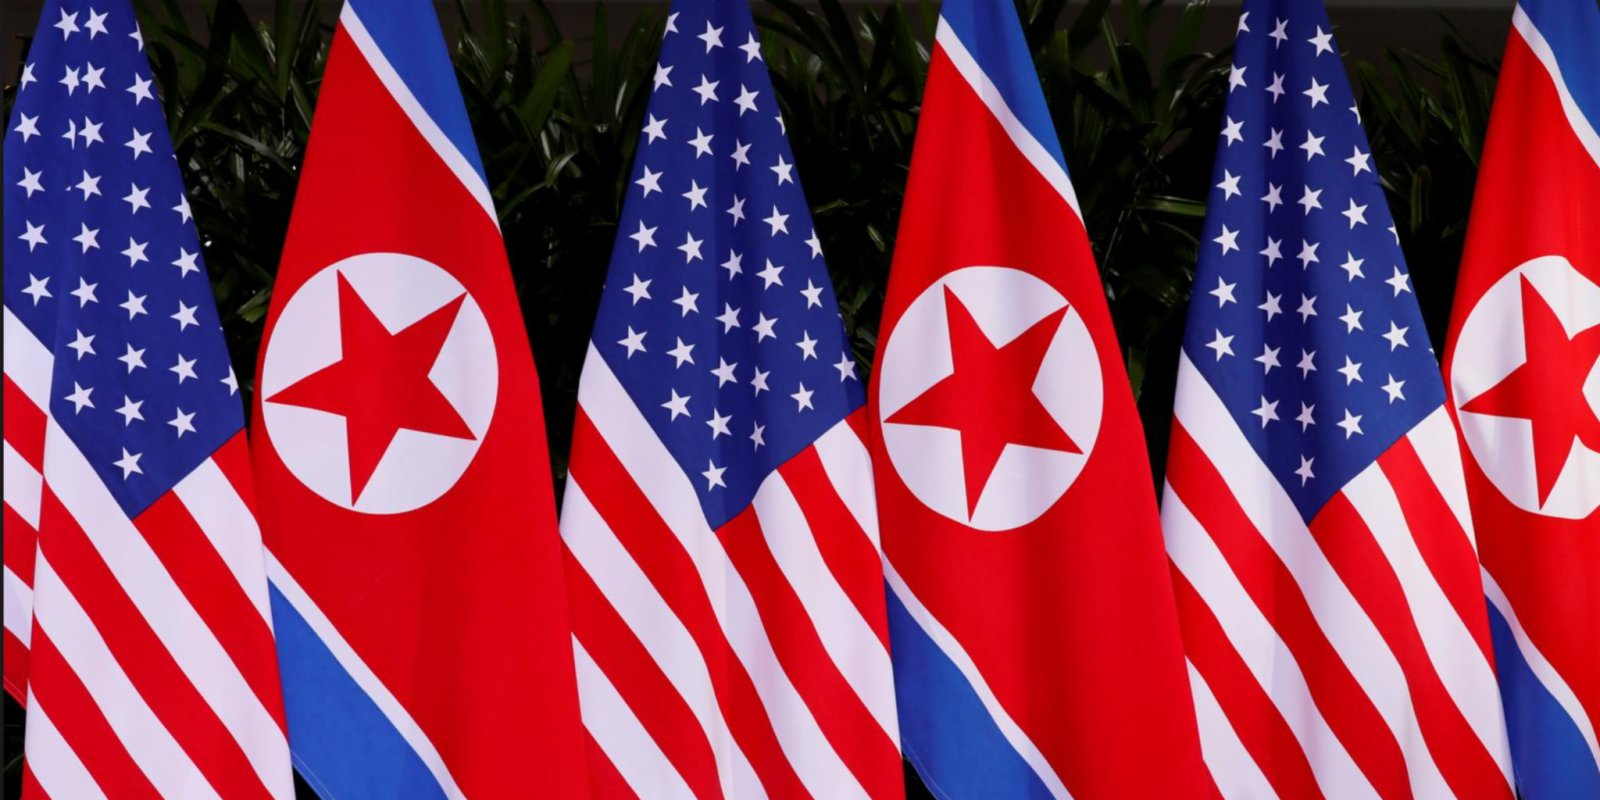 DPRK considers contact with US a waste of time